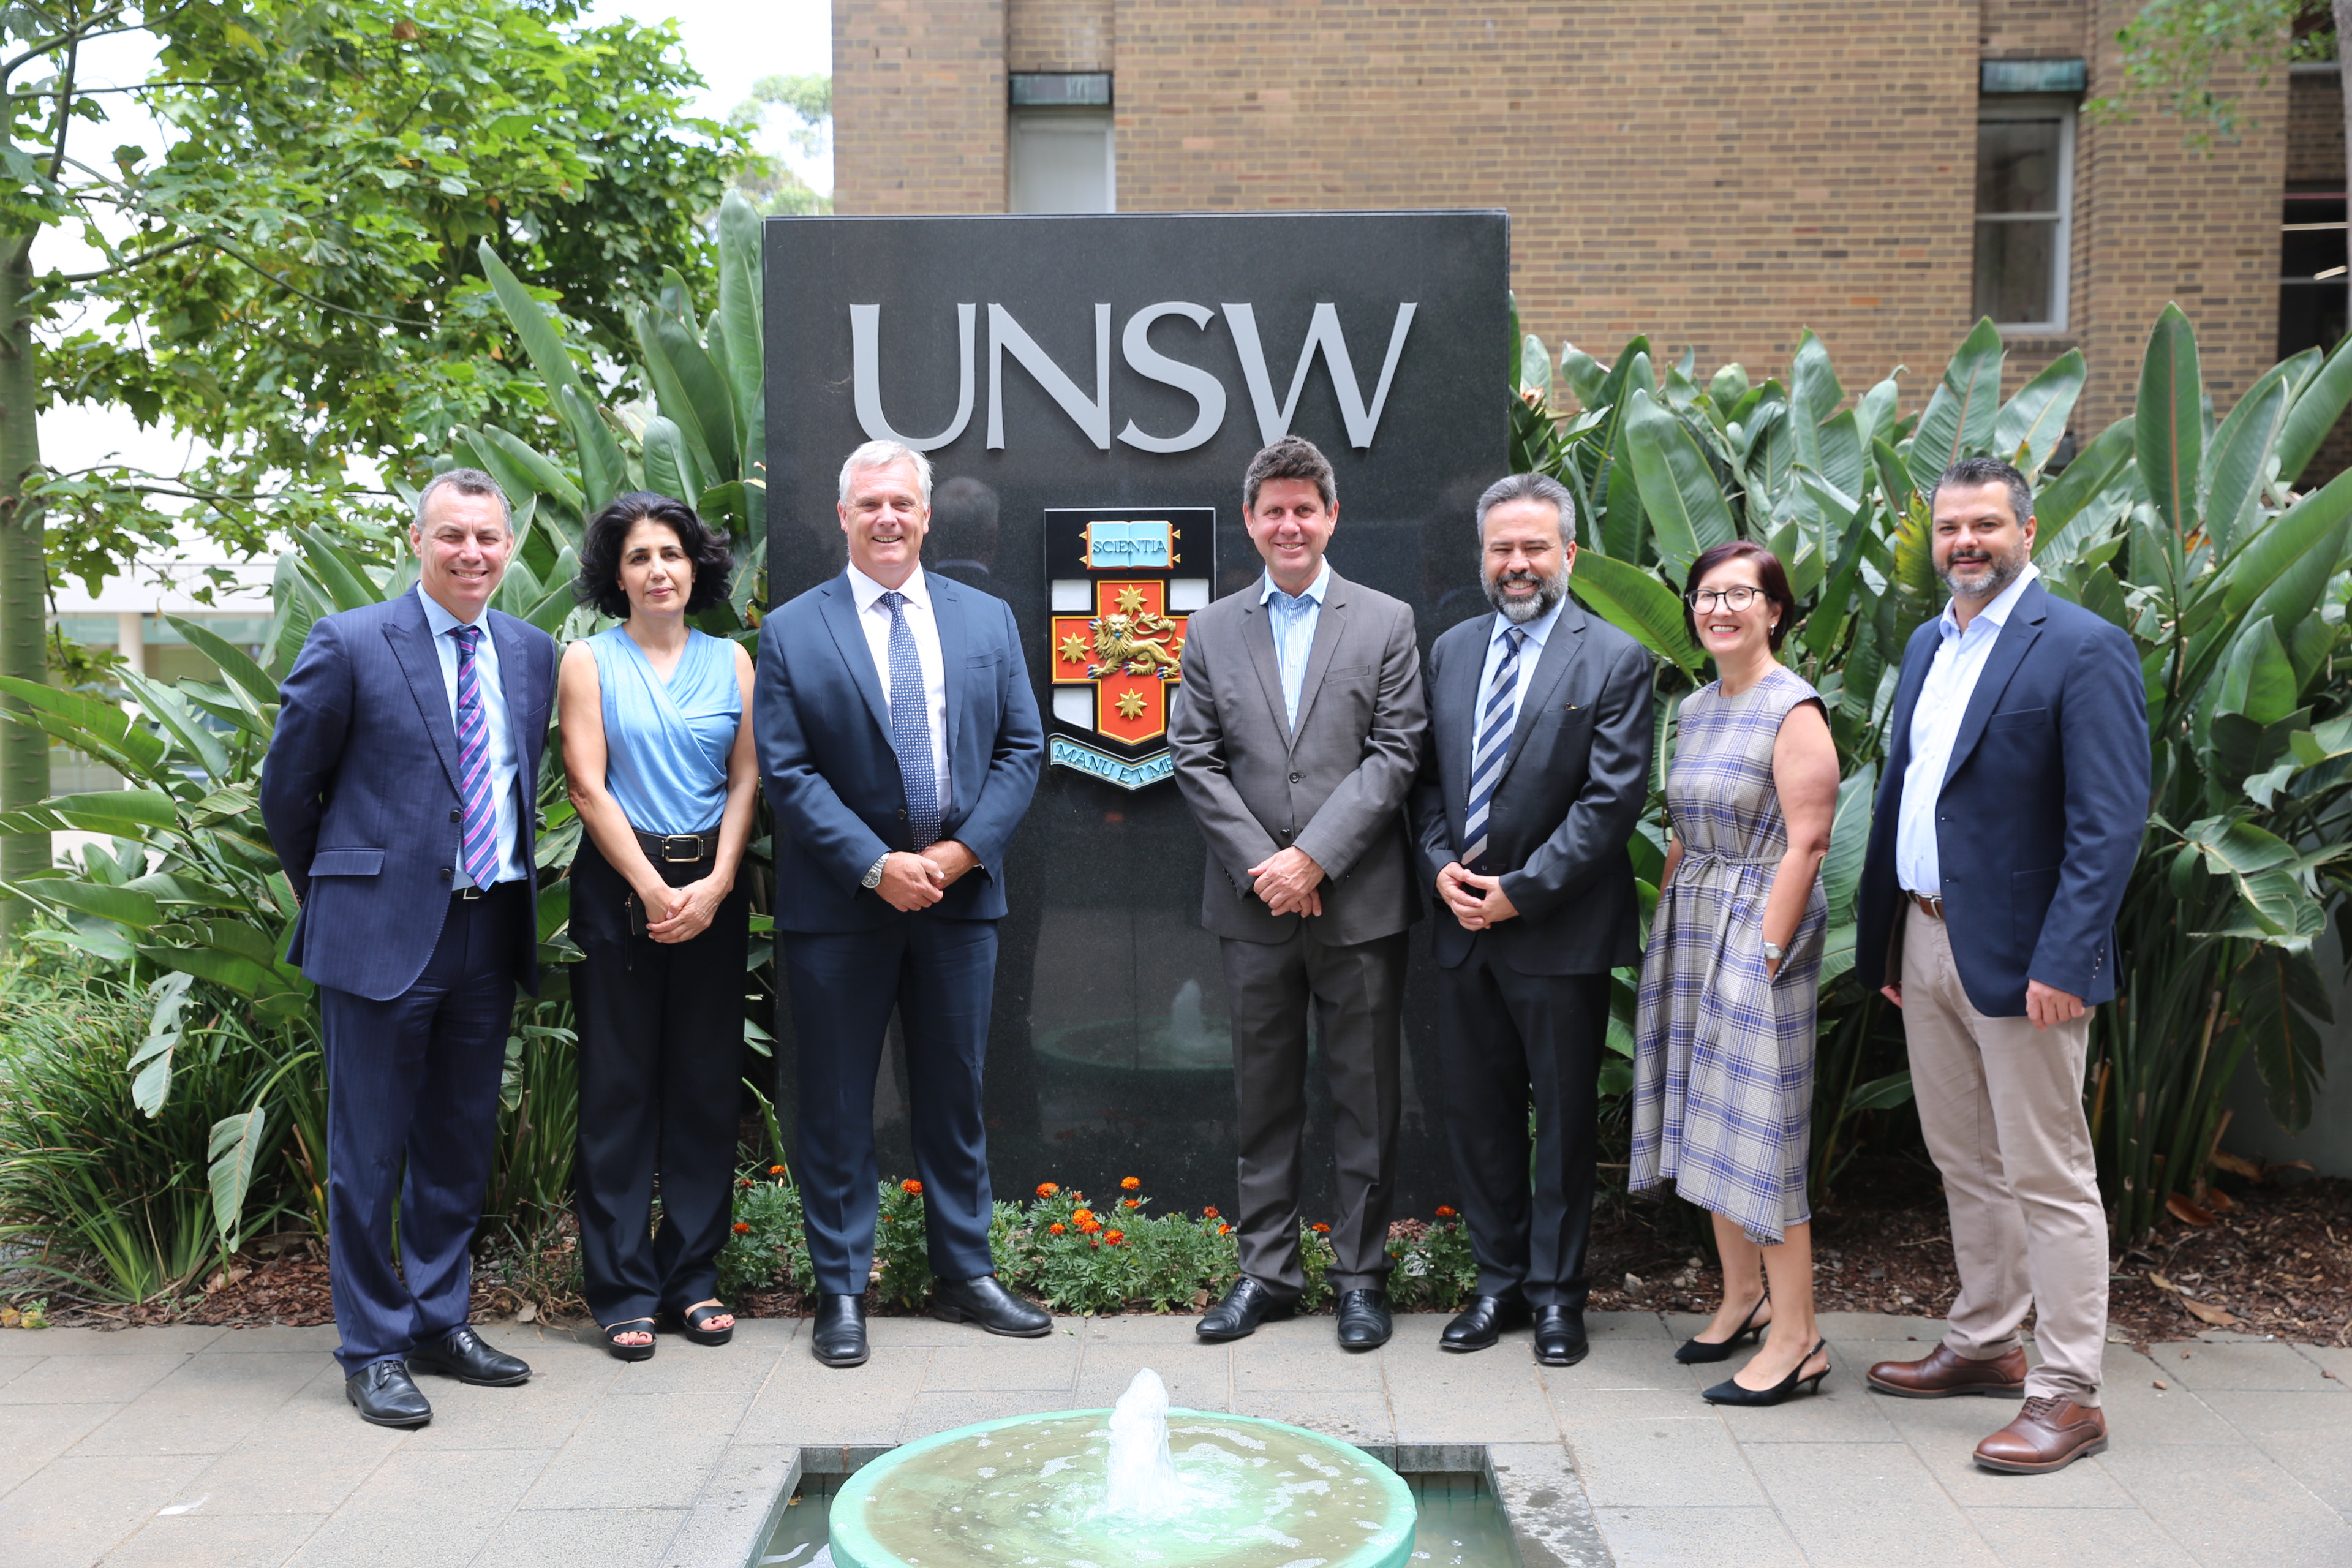 Australasian Institute of Mining and Metallurgy (AusIMM) and UNSW Sydney have this week announced a four-year partnership that will showcase the University as a leader in resources education on the world stage.